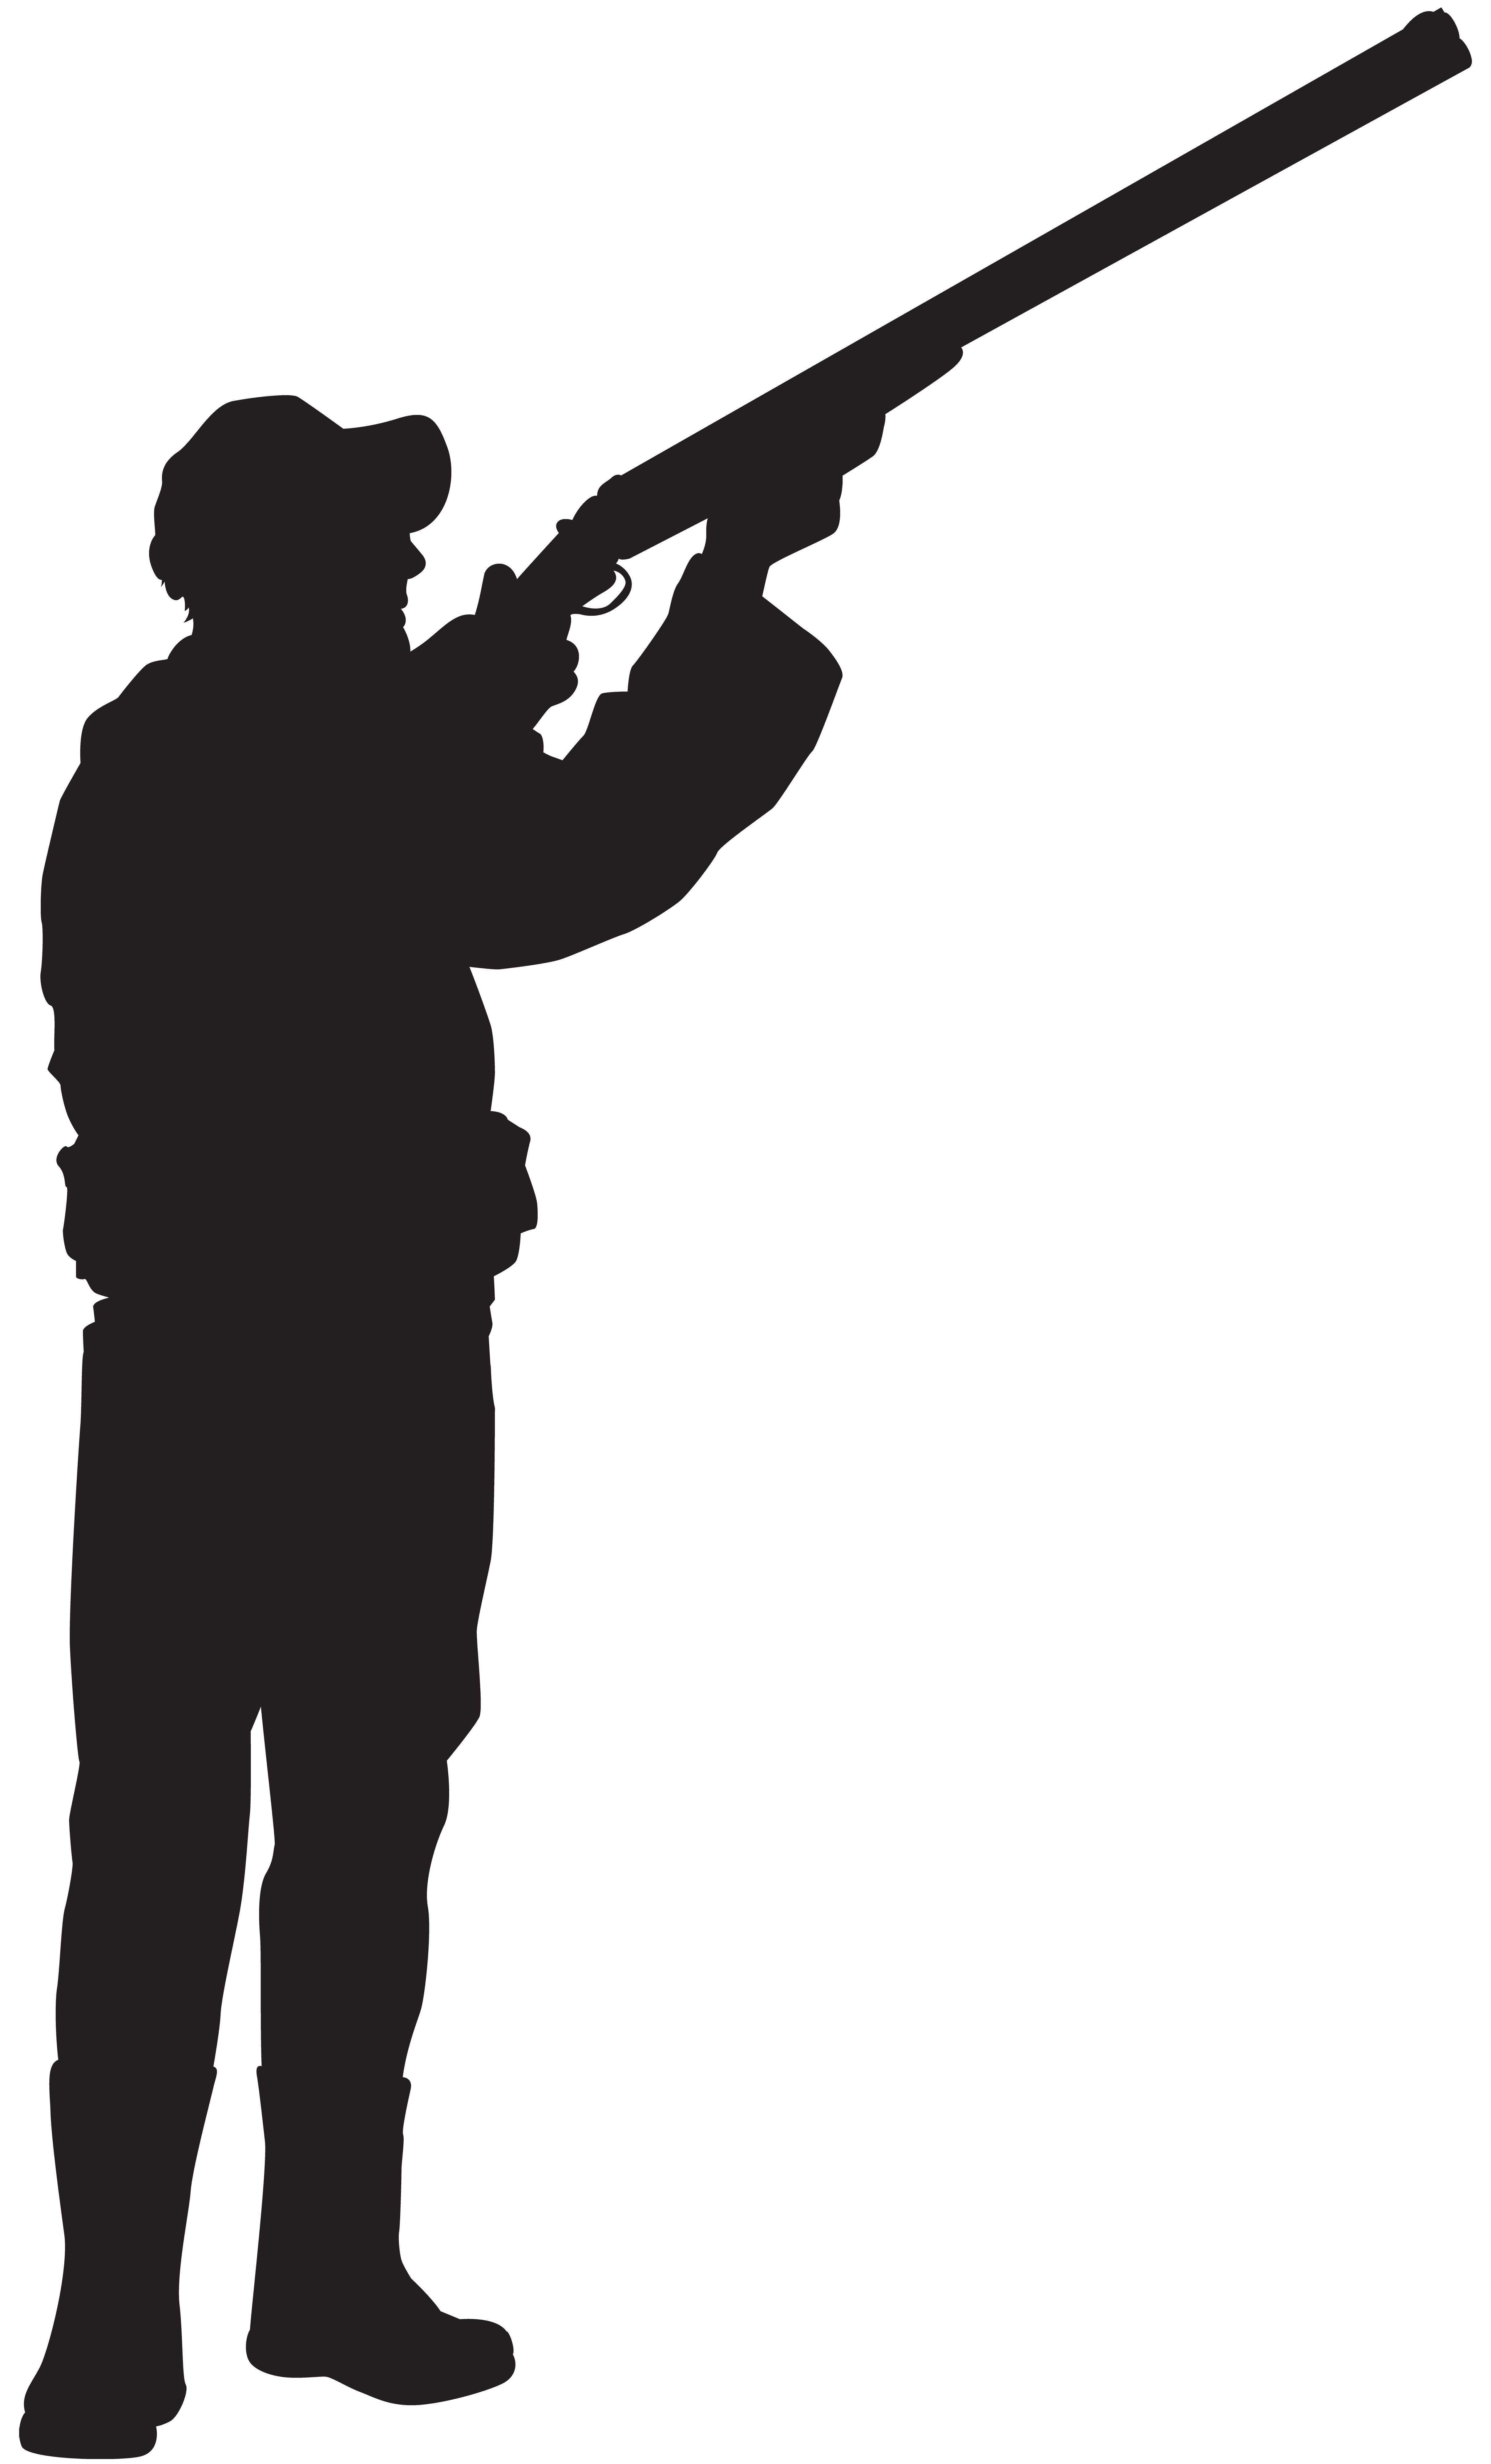 Hunting Silhouette Clip art.